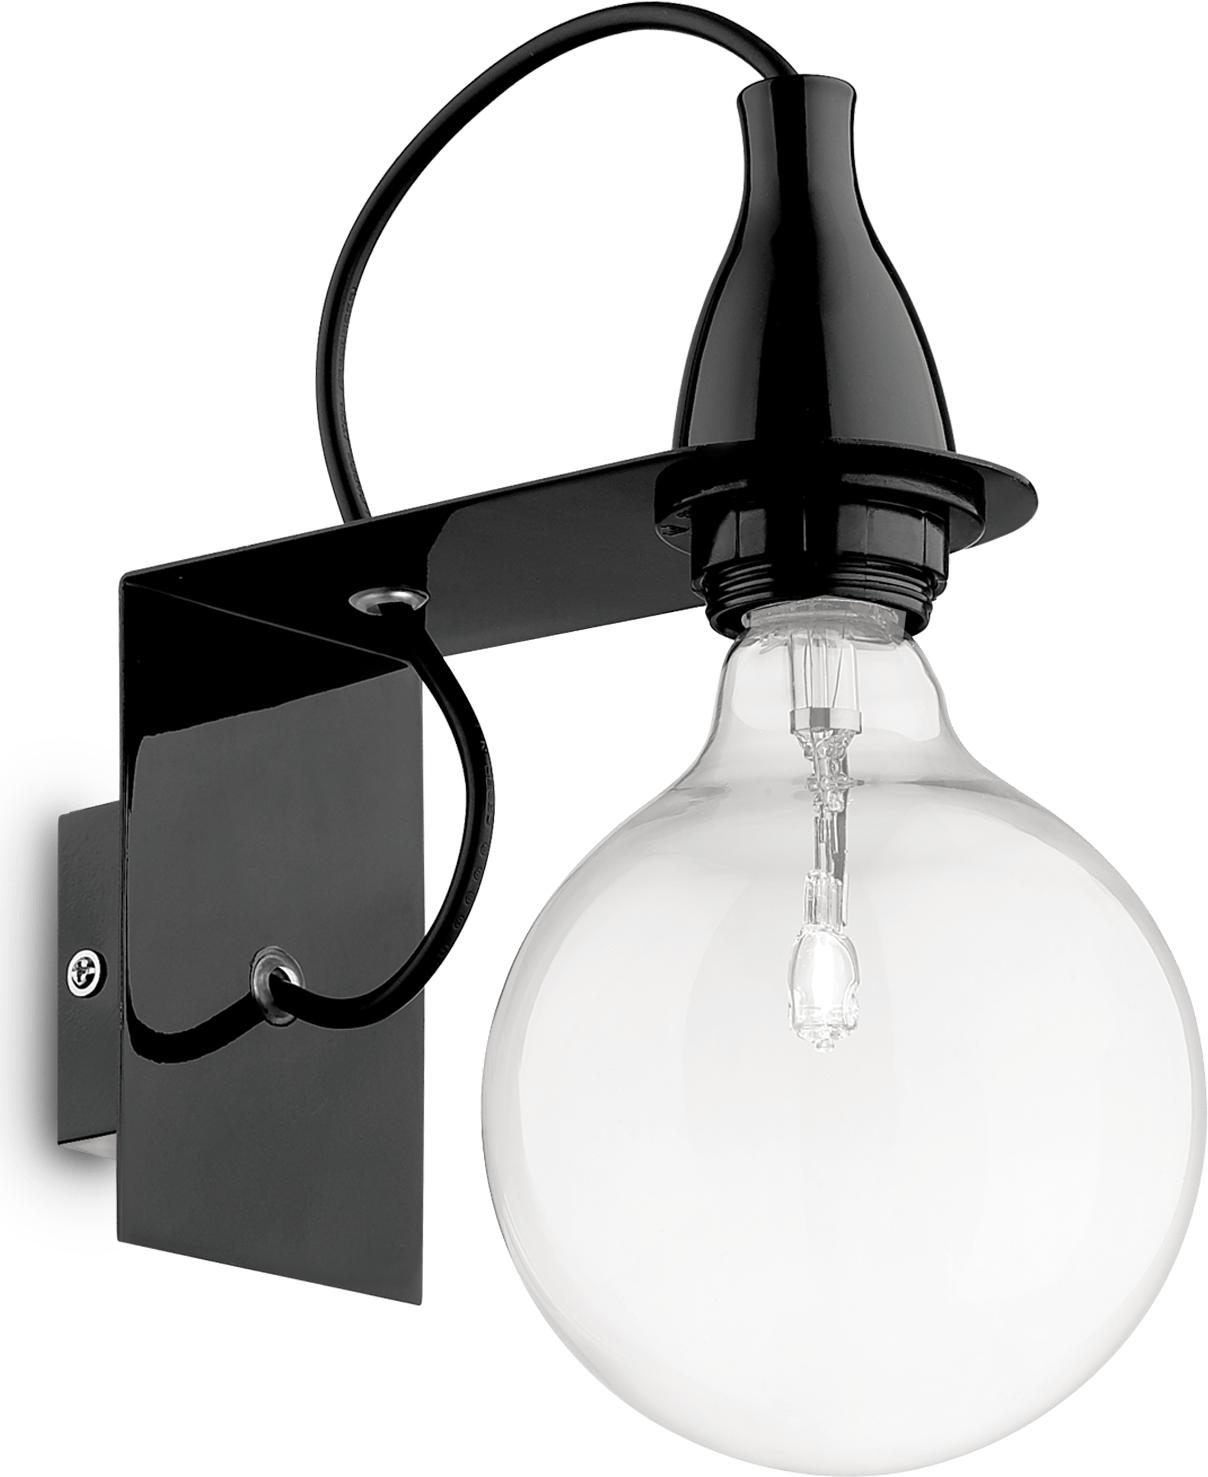 Ideal lux LED minimal ap1 nero Wandleuchte 5W 45214